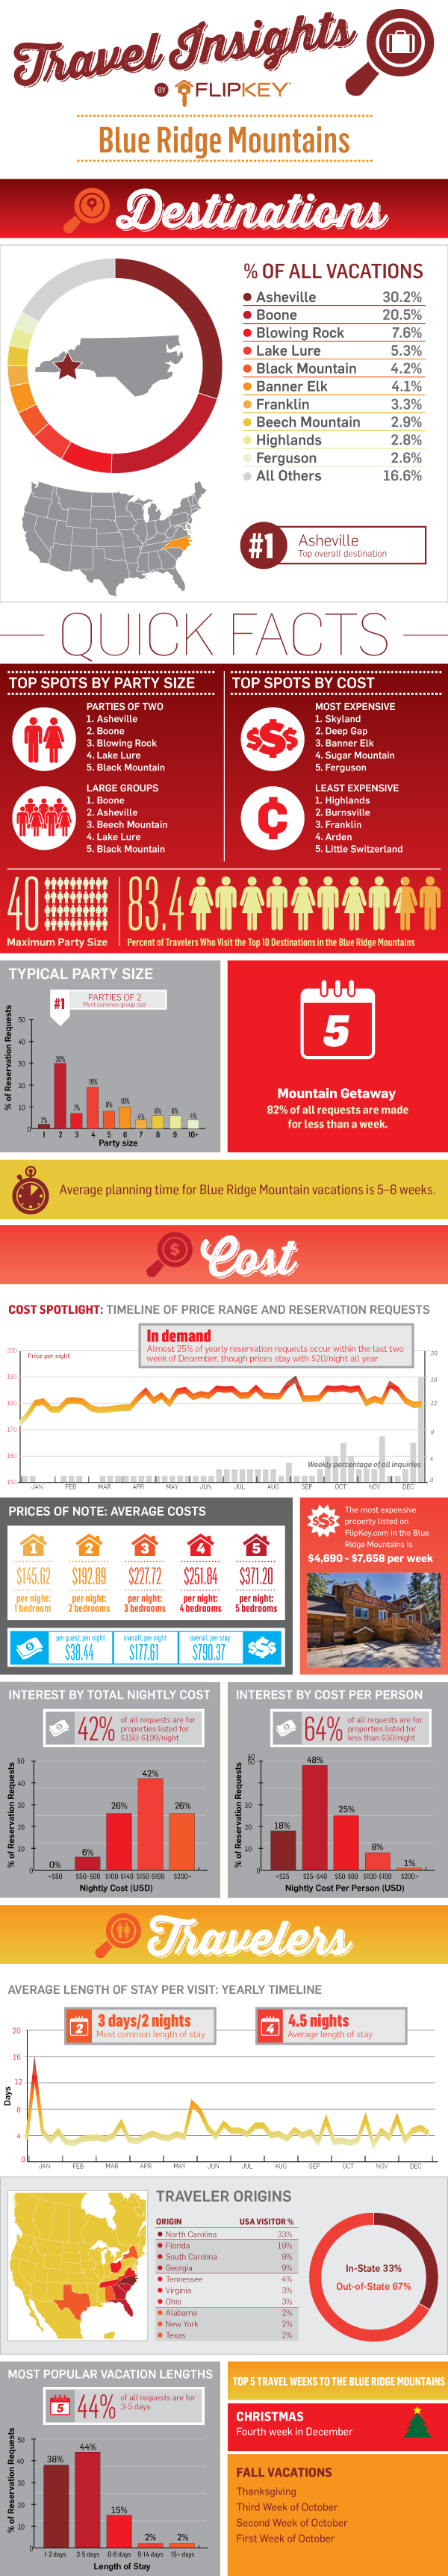 Blue Ridge Mountains Travel Insights Infographic